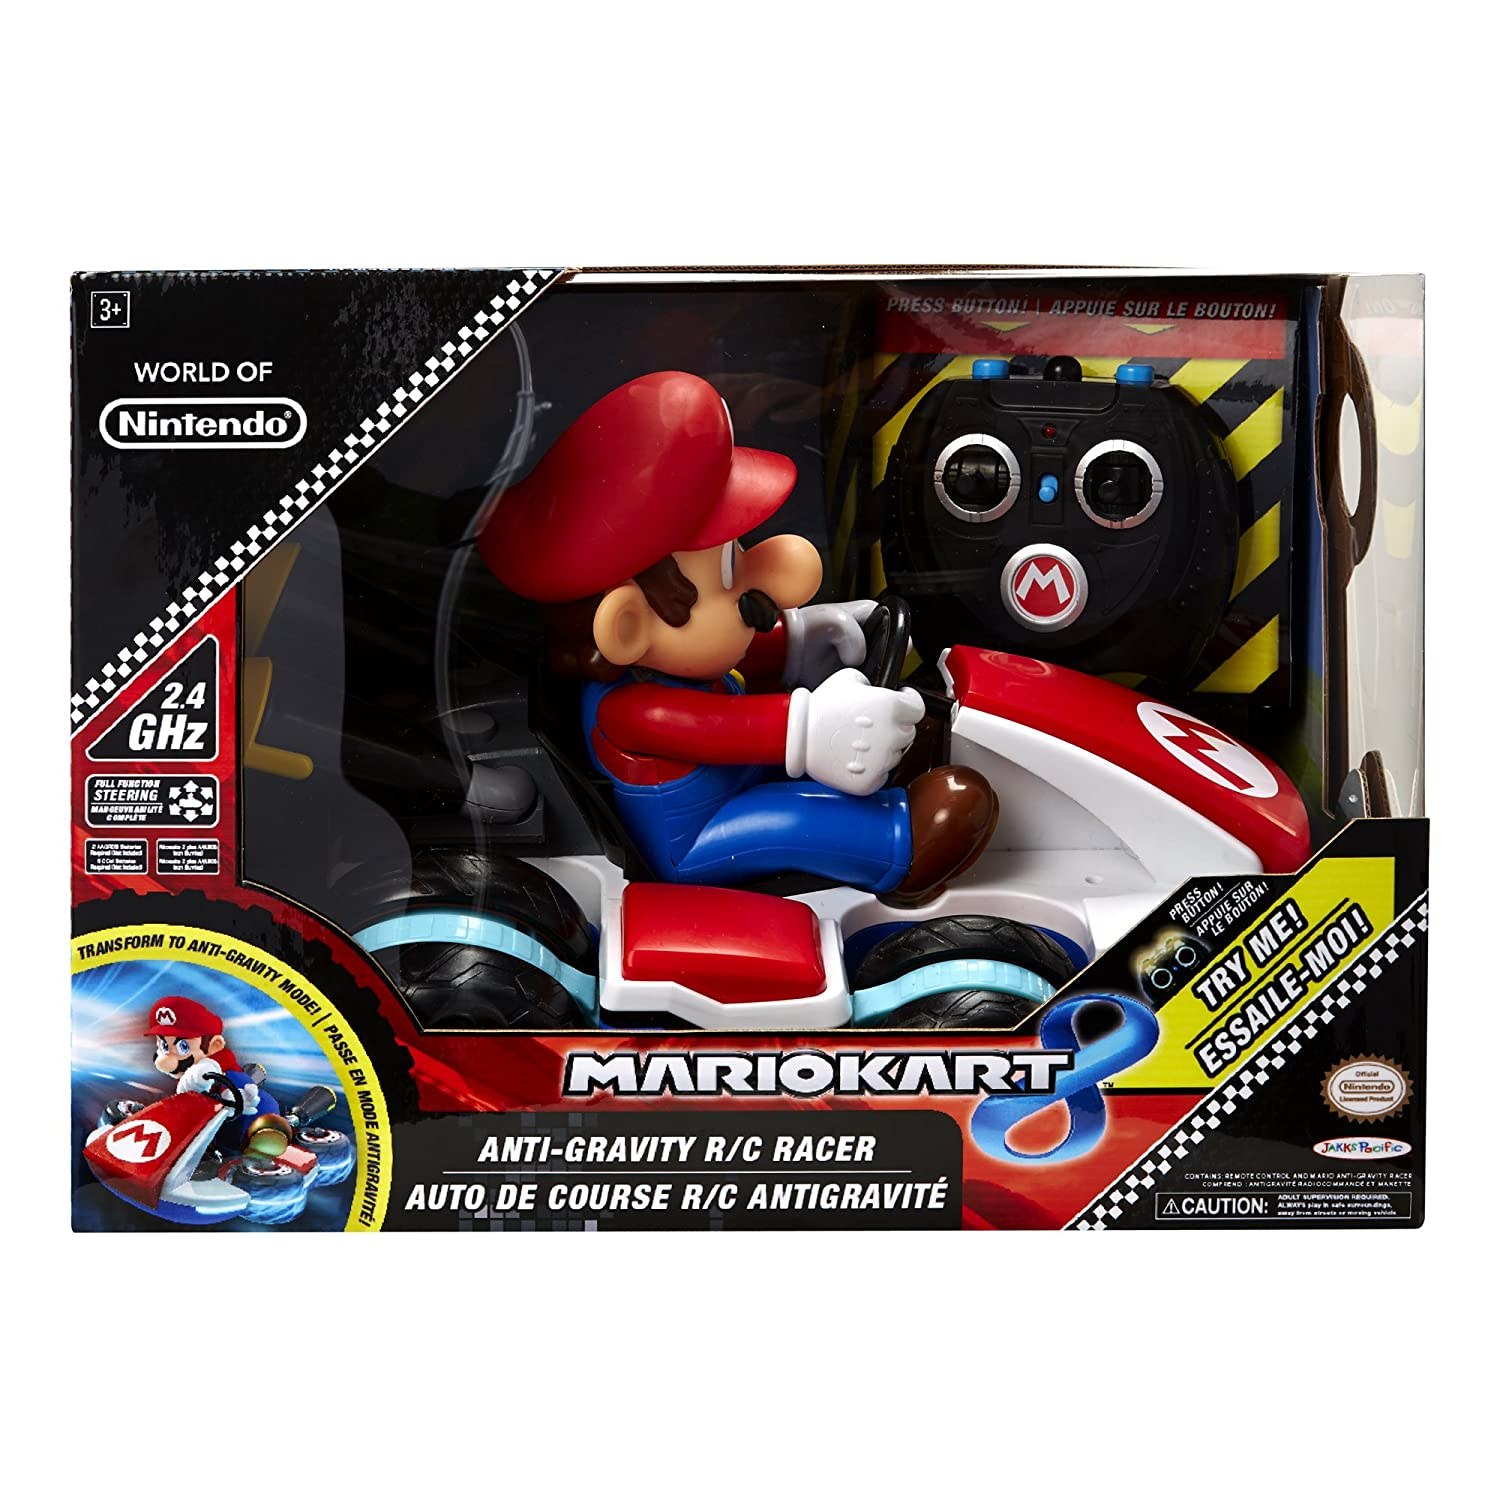 World Of Nintendo Mario Kart 8 Super Mario RC Racer: Amazon.es: Juguetes y juegos